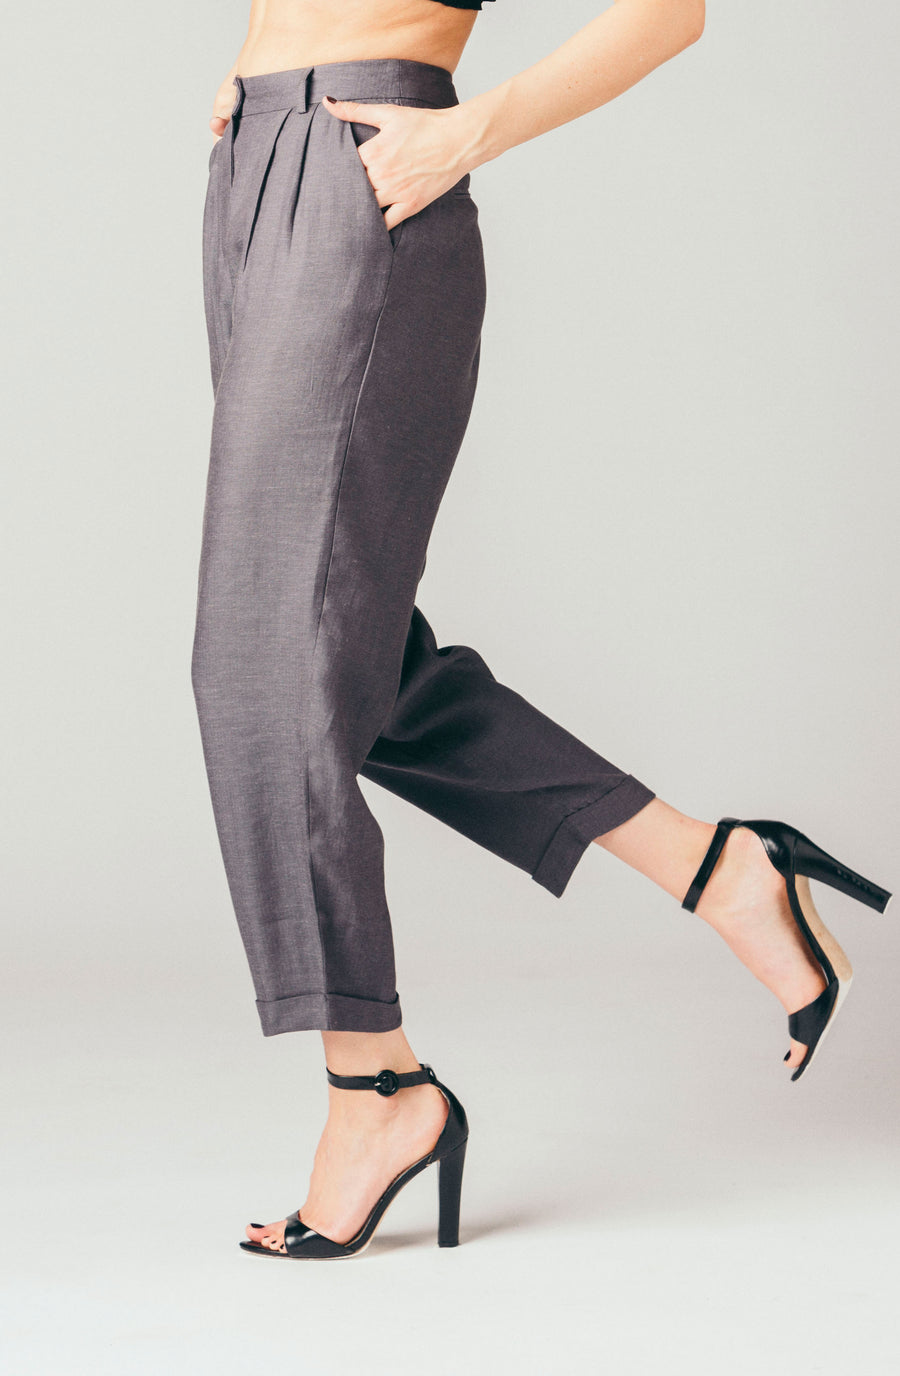 Native Youth grey, tapered, cropped trouser pants in a linen blend .